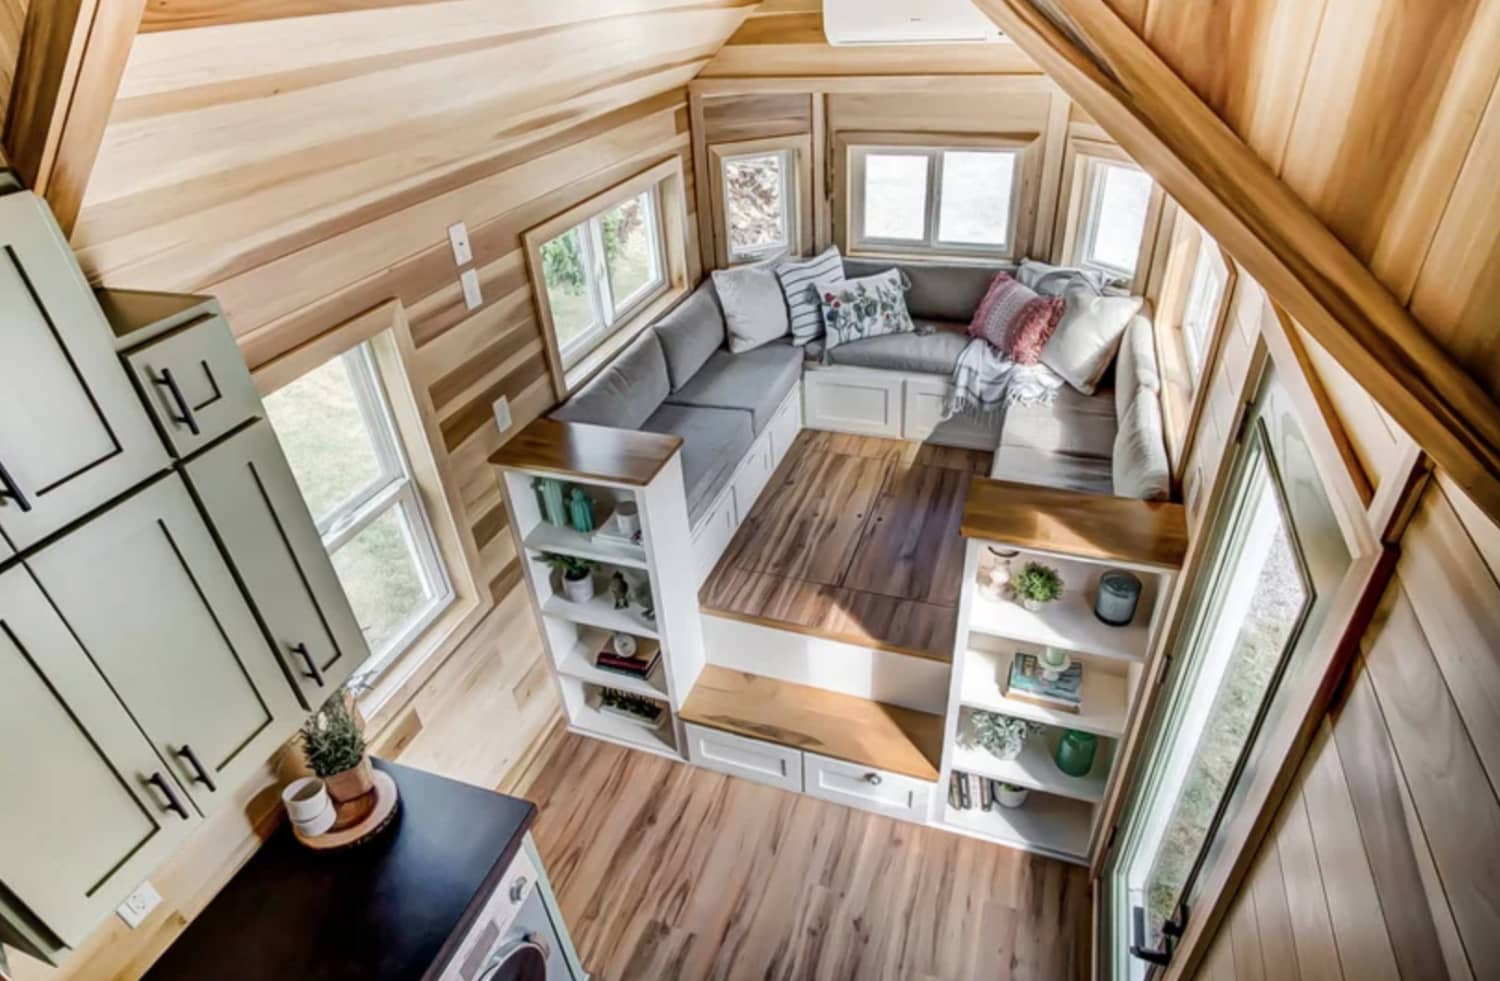 This Tiny House Has a Ton of Super Smart Storage